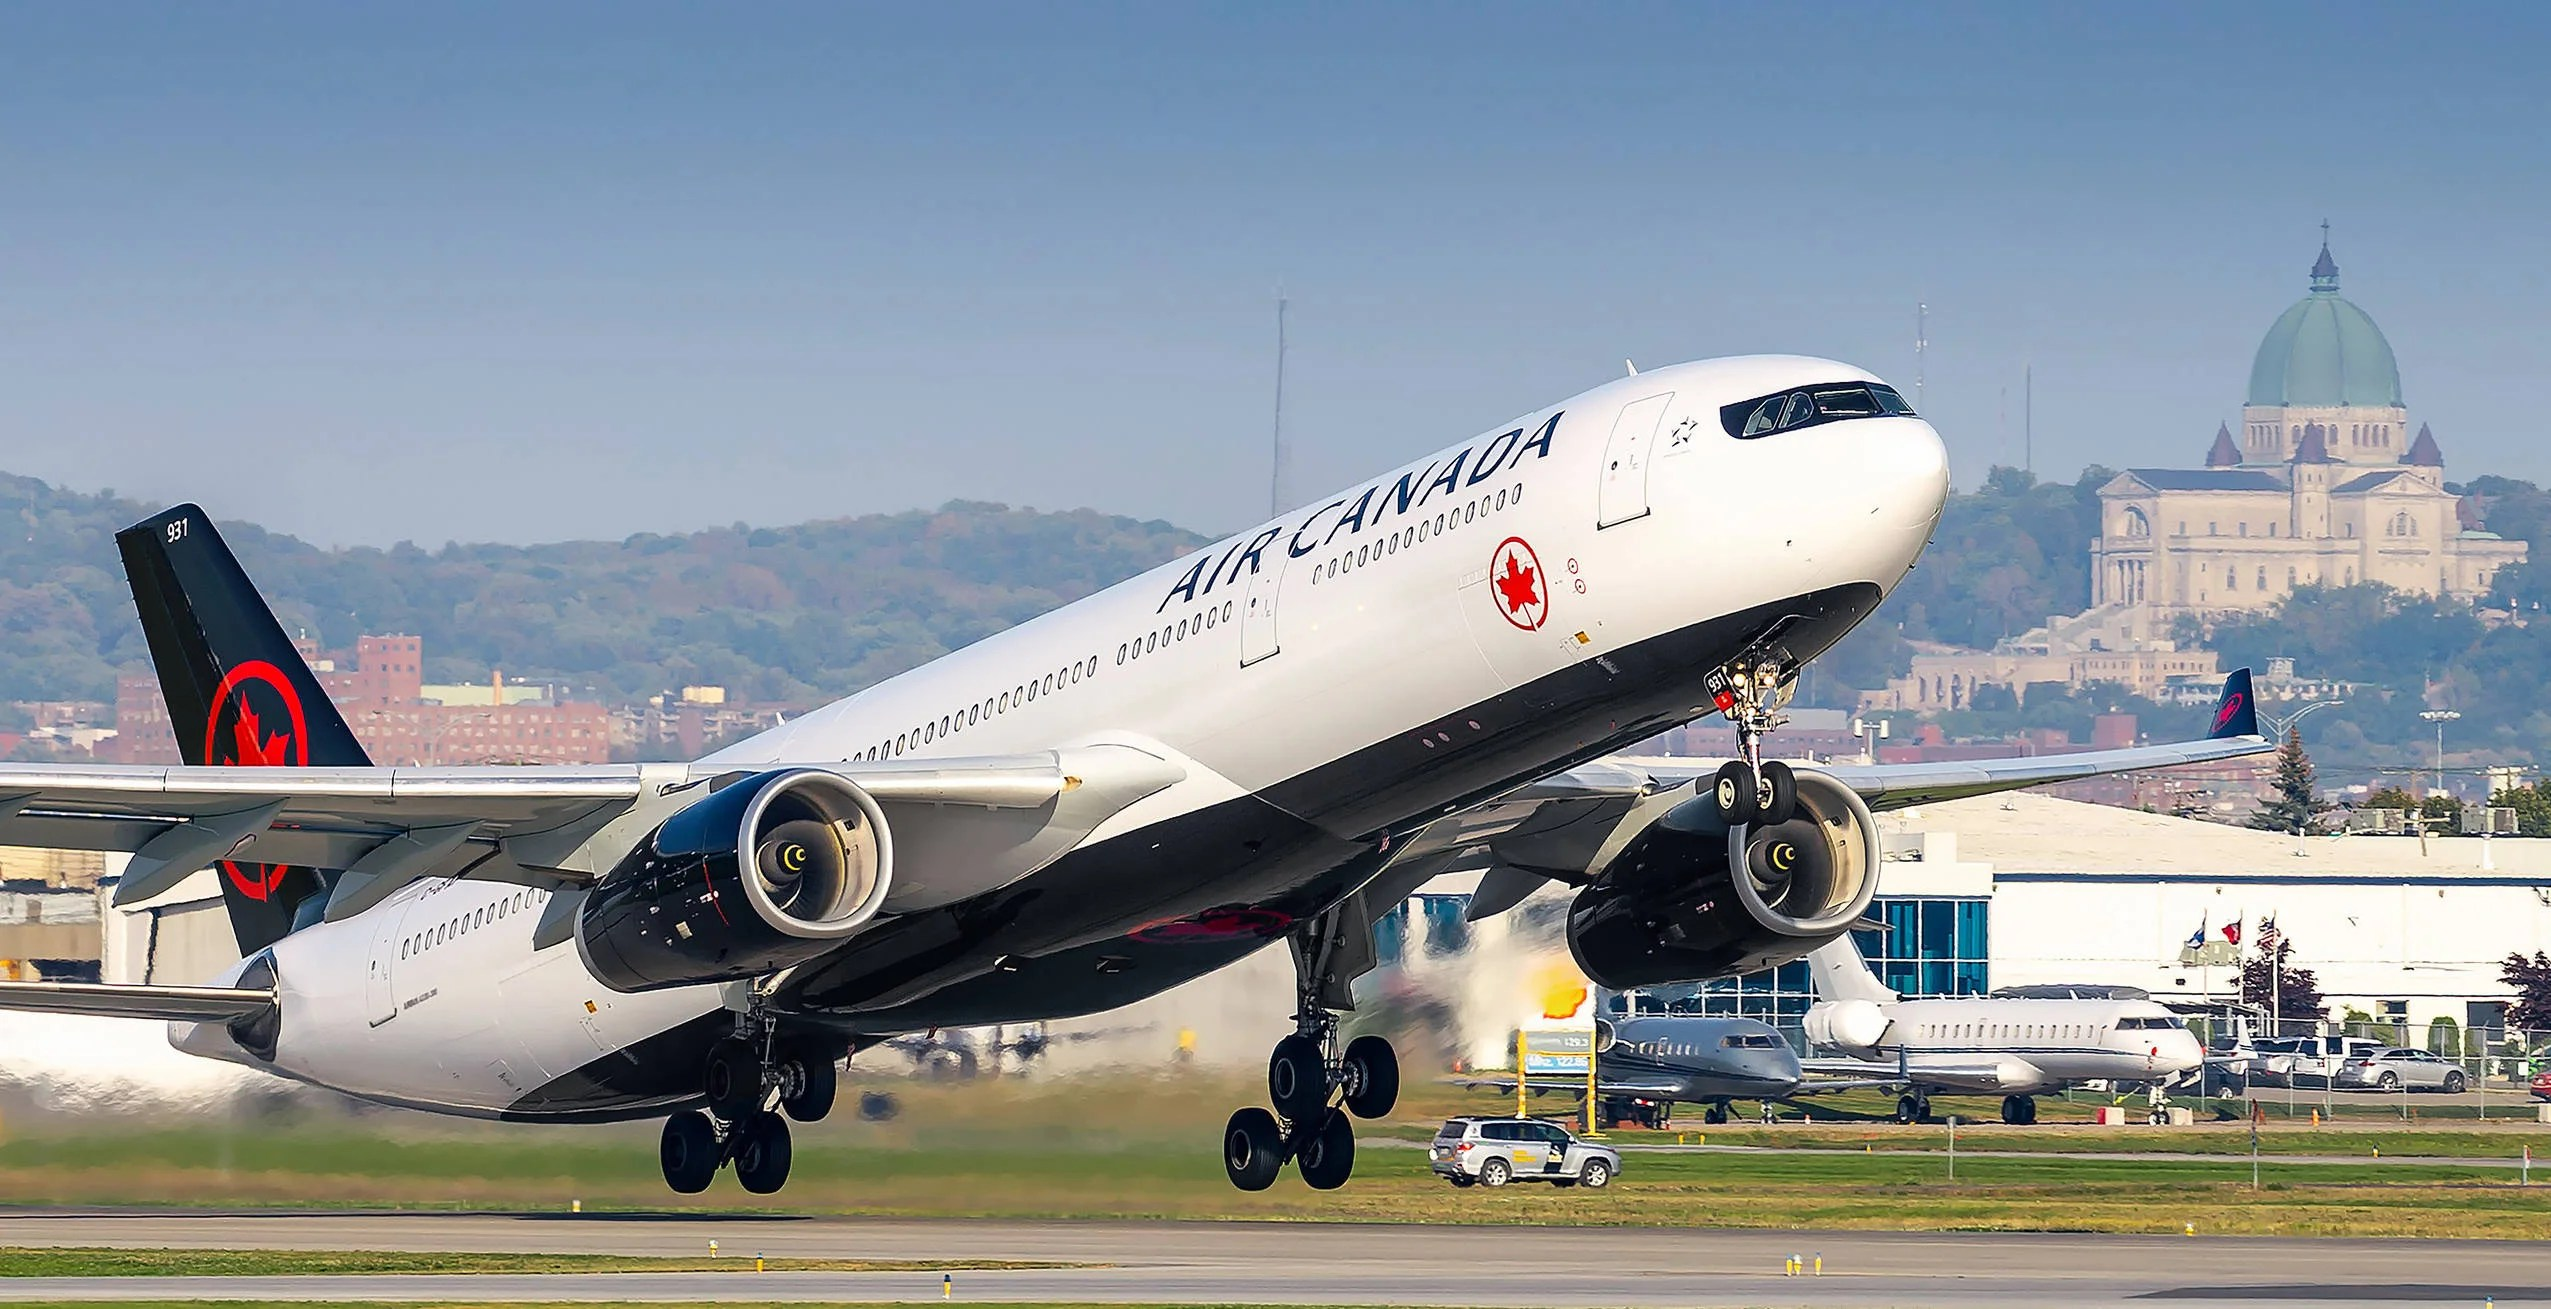 Air Canada and Aeroplan: System issues continue to frustrate customers